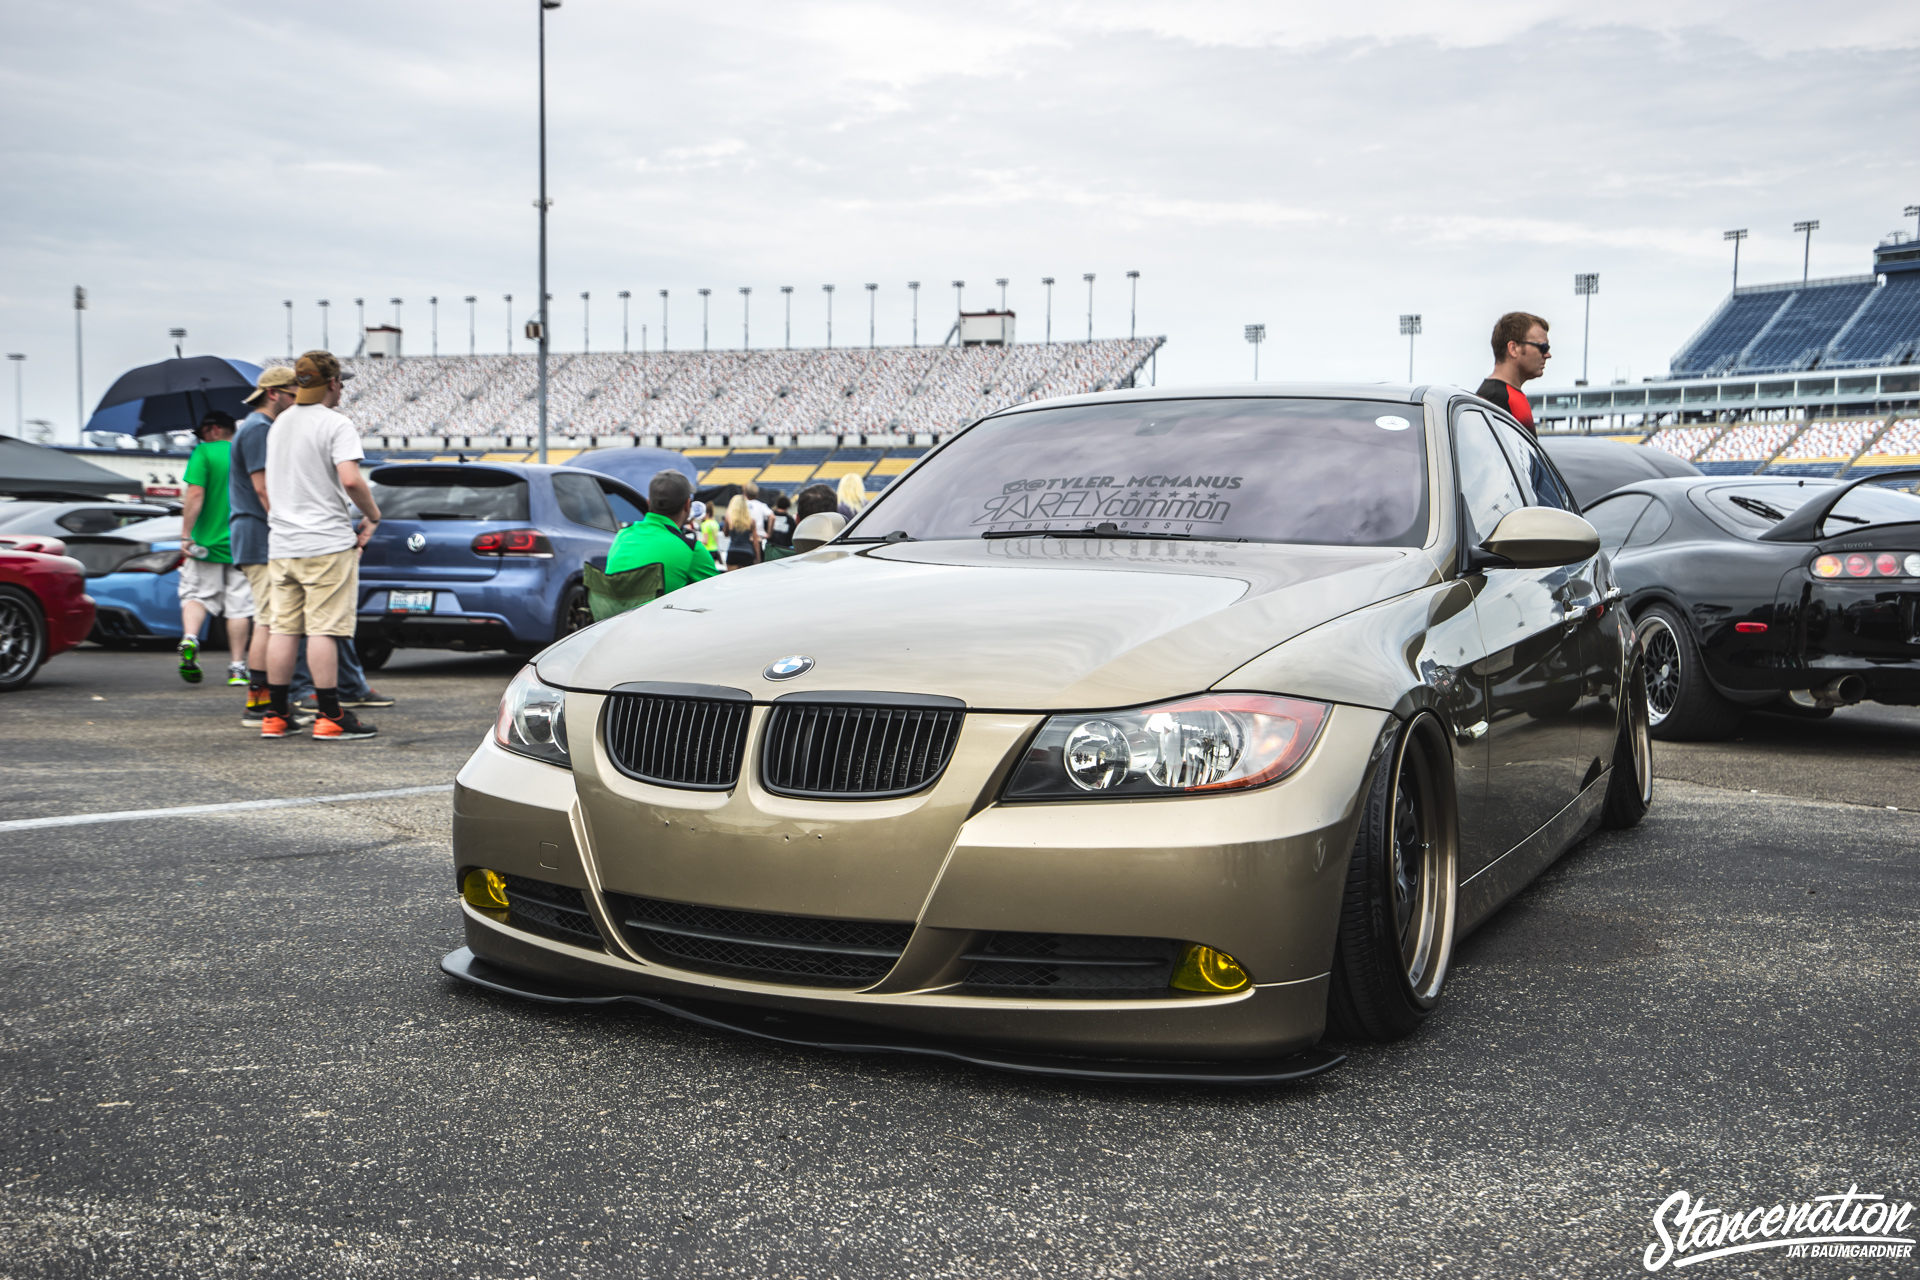 Import alliance summer meet 2015 photo coverage stancenation - Import Alliance Summer Meet 2015 Photo Coverage